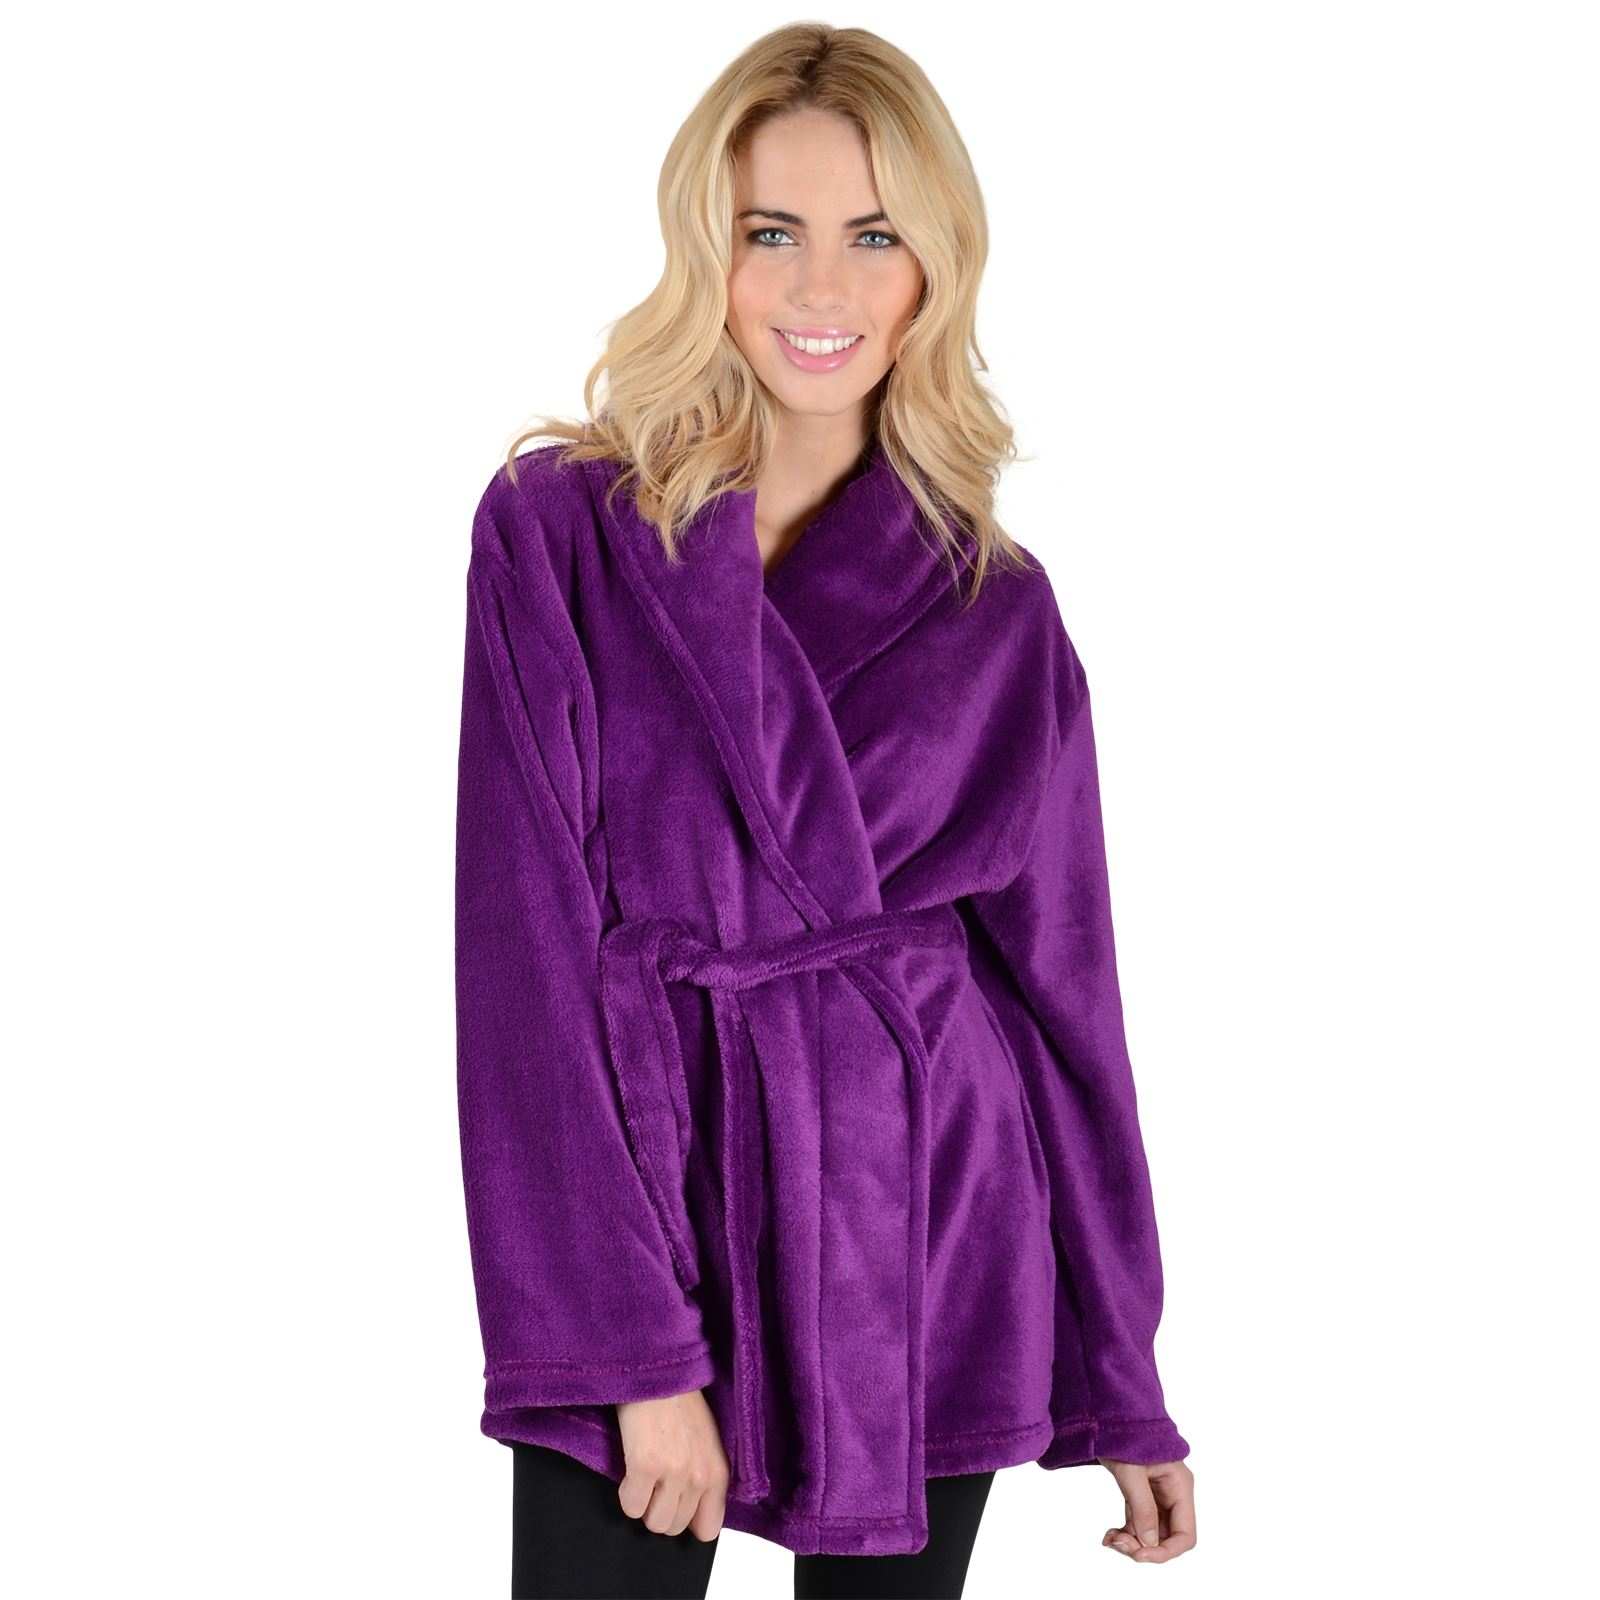 Womens Mini Bathrobe With Collar - Luxury Soft Fleece Dressing Gown ...